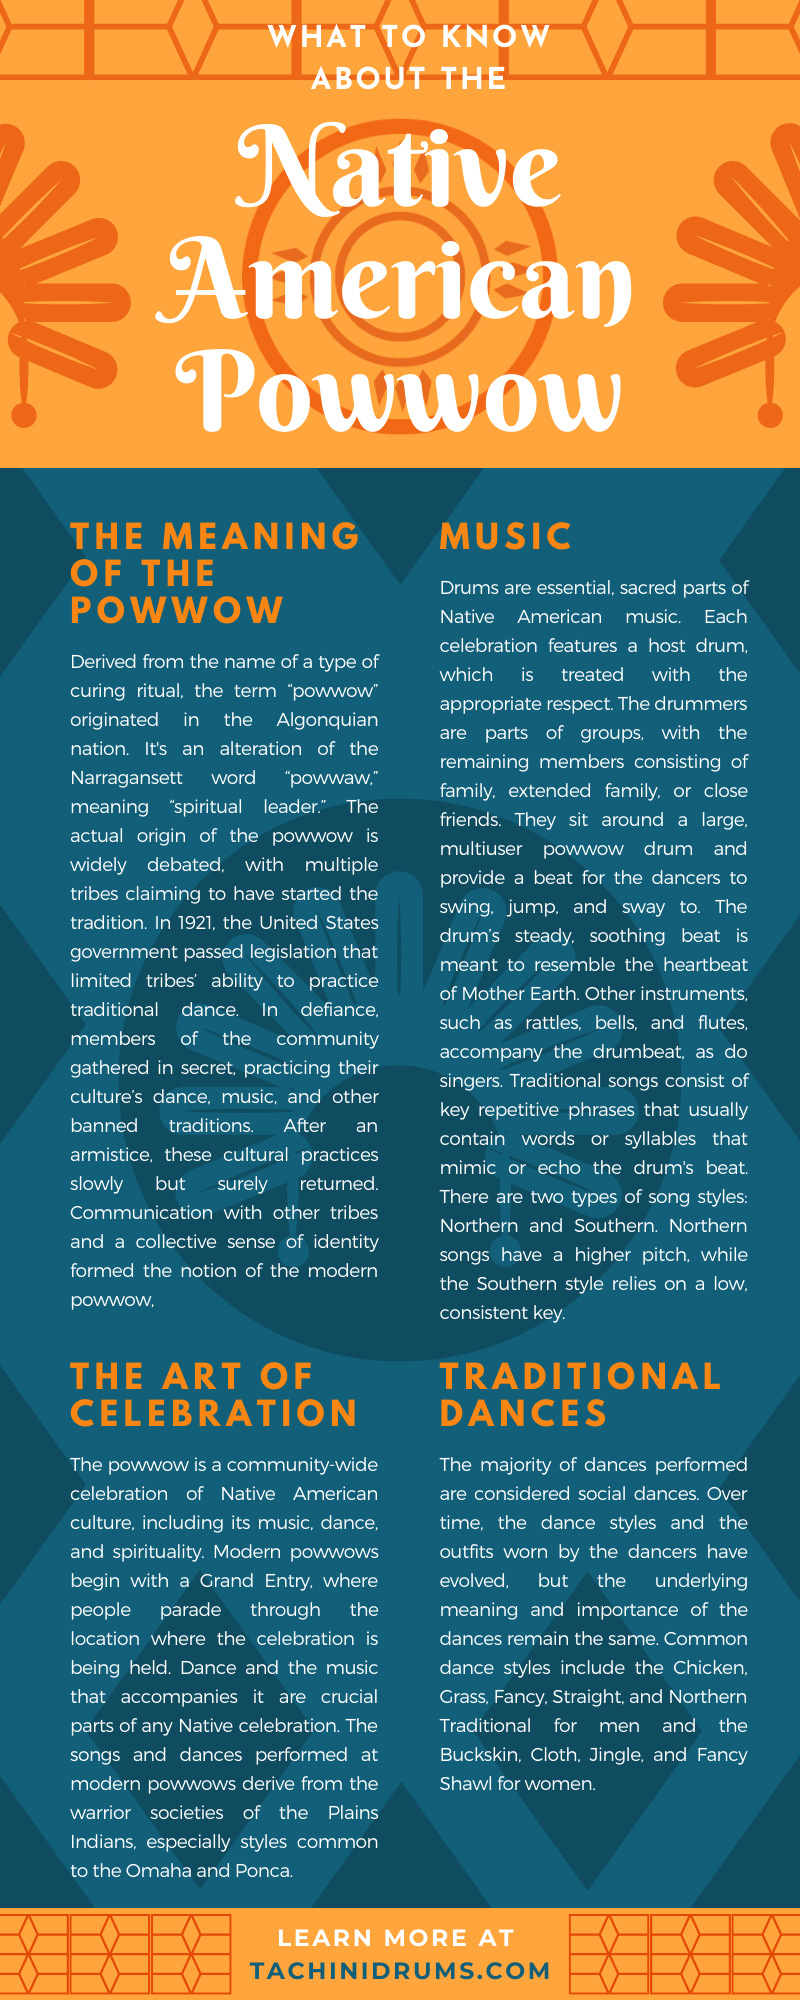 What To Know About the Native American Powwow